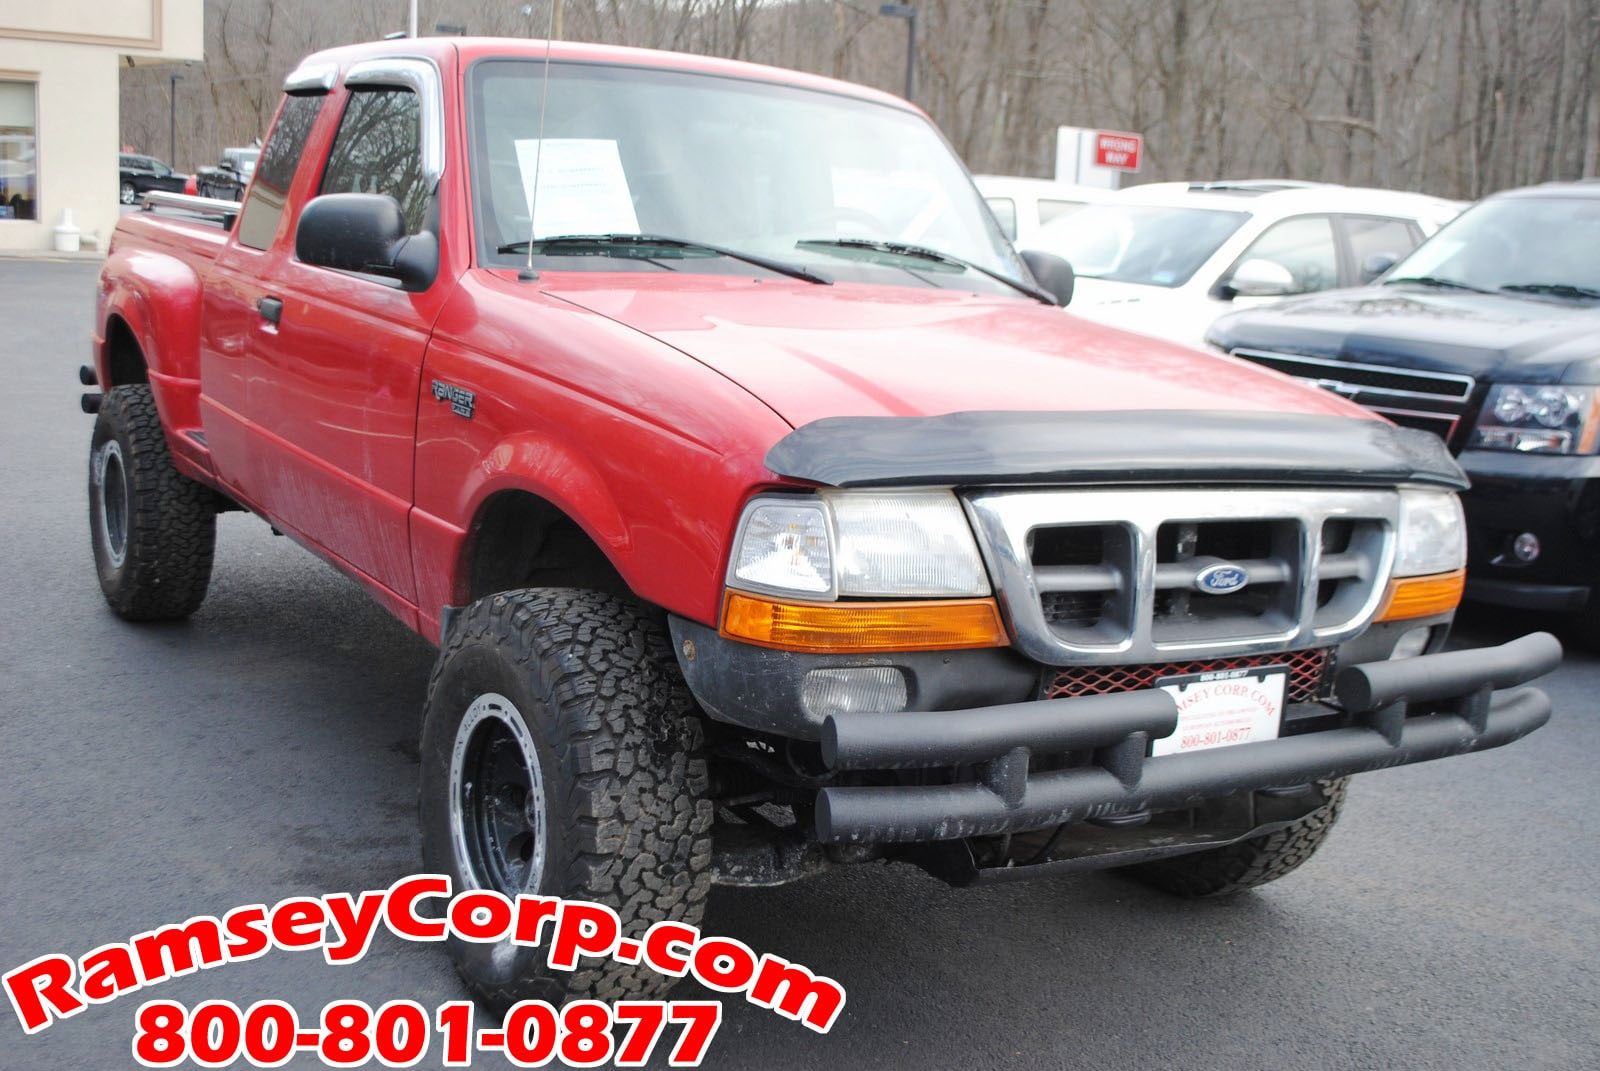 used 2000 ford ranger for sale west milford nj. Cars Review. Best American Auto & Cars Review